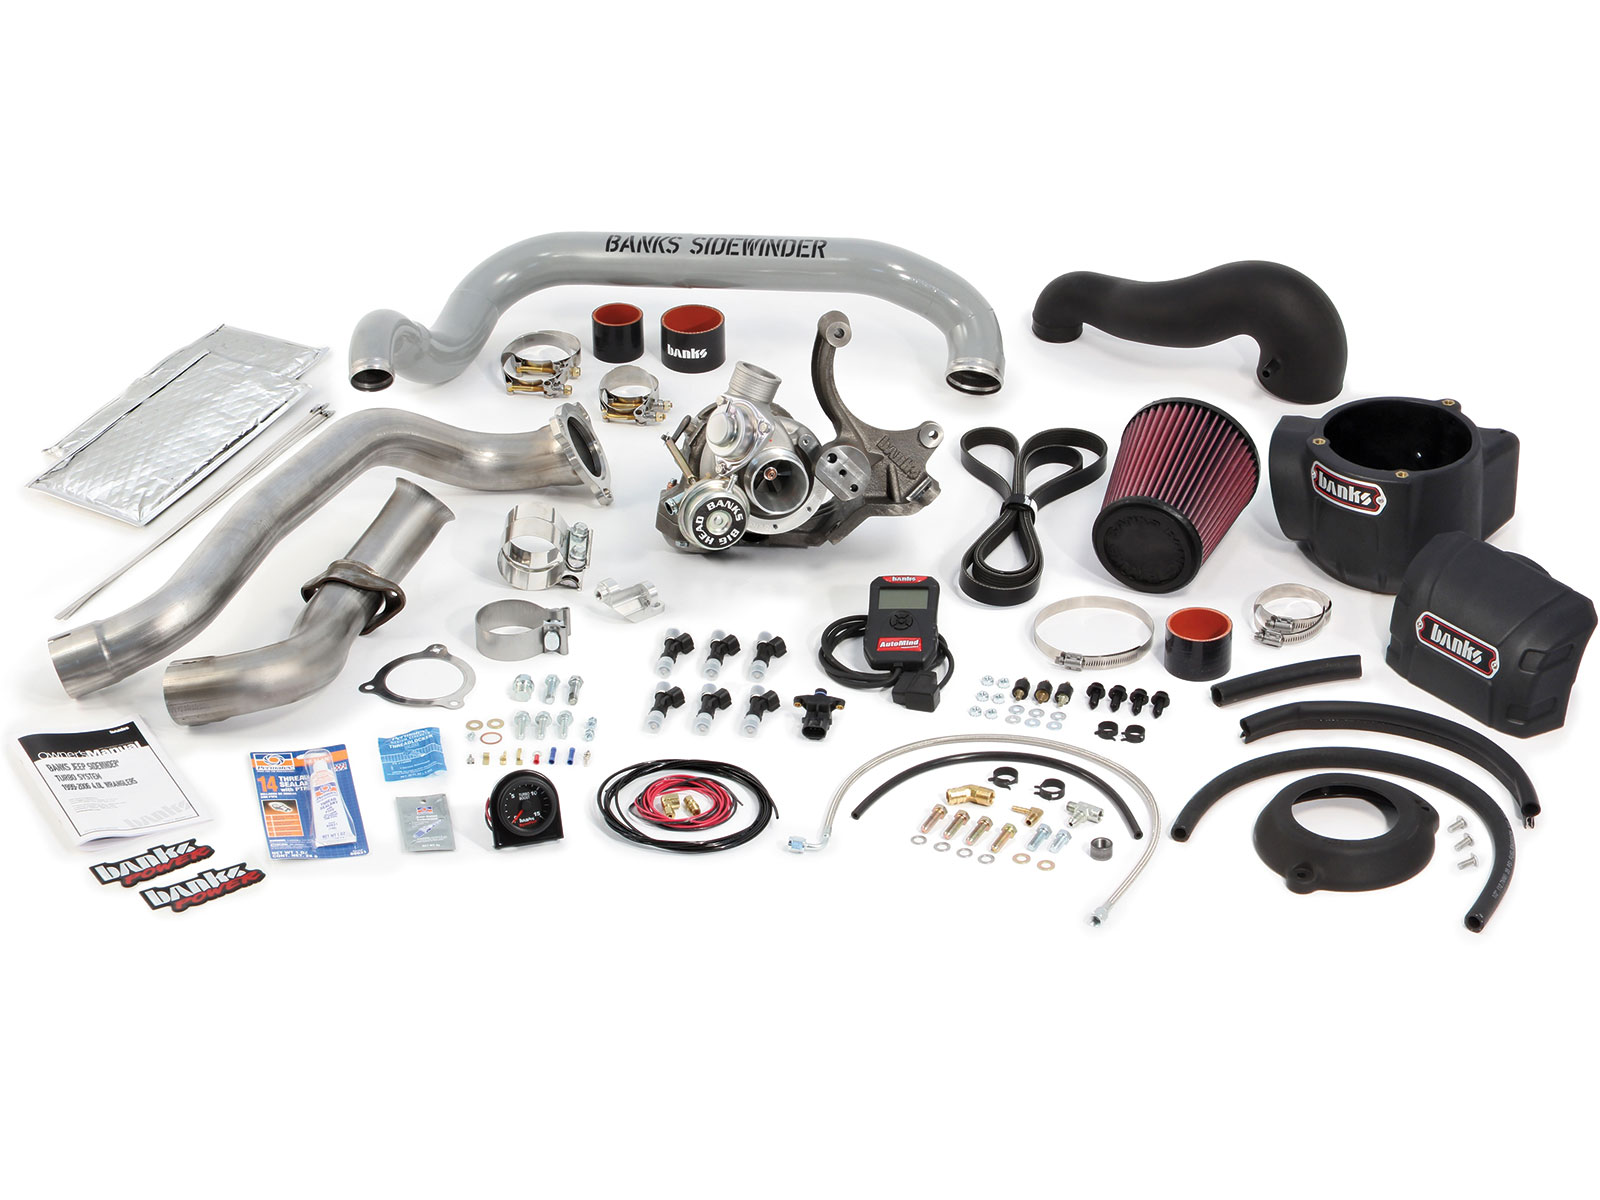 The Banks Power 4.0L Sidewinder Turbo kit includes a turbocharger with integrated wastegate/blow-off valve, a cast-iron turbo mount with alternator relocation, Bosch 35 lb/hr fuel injectors, stainless-steel turbine inlet/outlet pipes, a boost tube with provisions for water injection nozzles, a two-bar MAP sensor with a billet throttle body spacer mount, a handheld flash programmer, a Turbo-specific Ram-Air system with a through-hood Super Scoop, a boost gauge, and all necessary hoses, fittings, and hardware. Installation is relatively simple, and the entire project can be completed in one day.